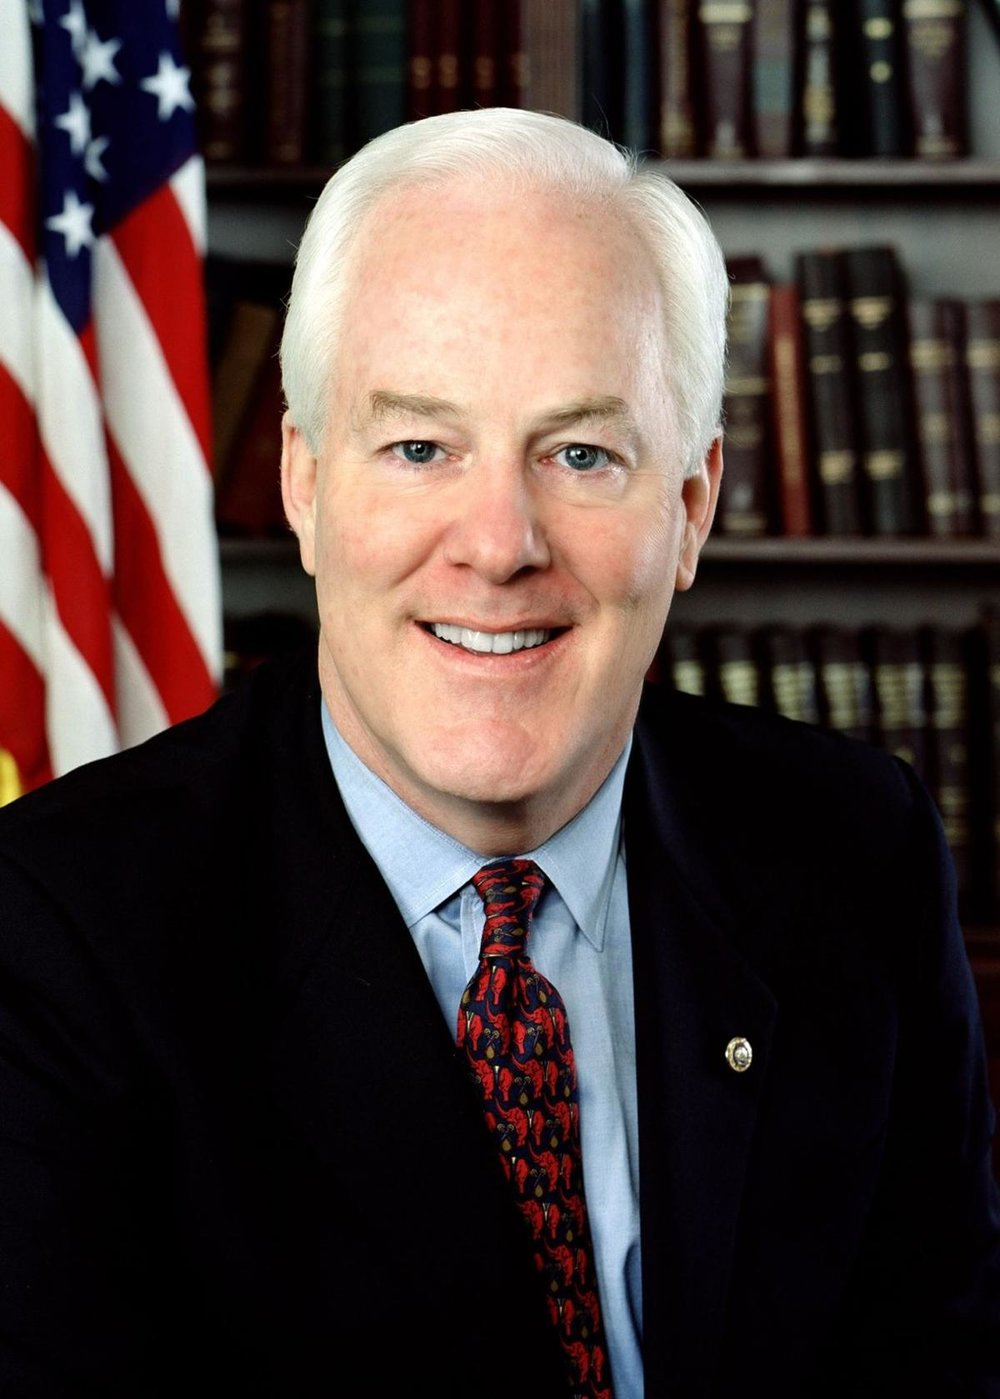 United States Senator - Senator John CornynJohn Cornyn is a U.S. Senator from Texas. He was born in Houston and is currently in his third term, serving since 2002.Houston Office: 5300 Memorial Drive Suite 980, Houston, TX 77007Main: 713-572-3337